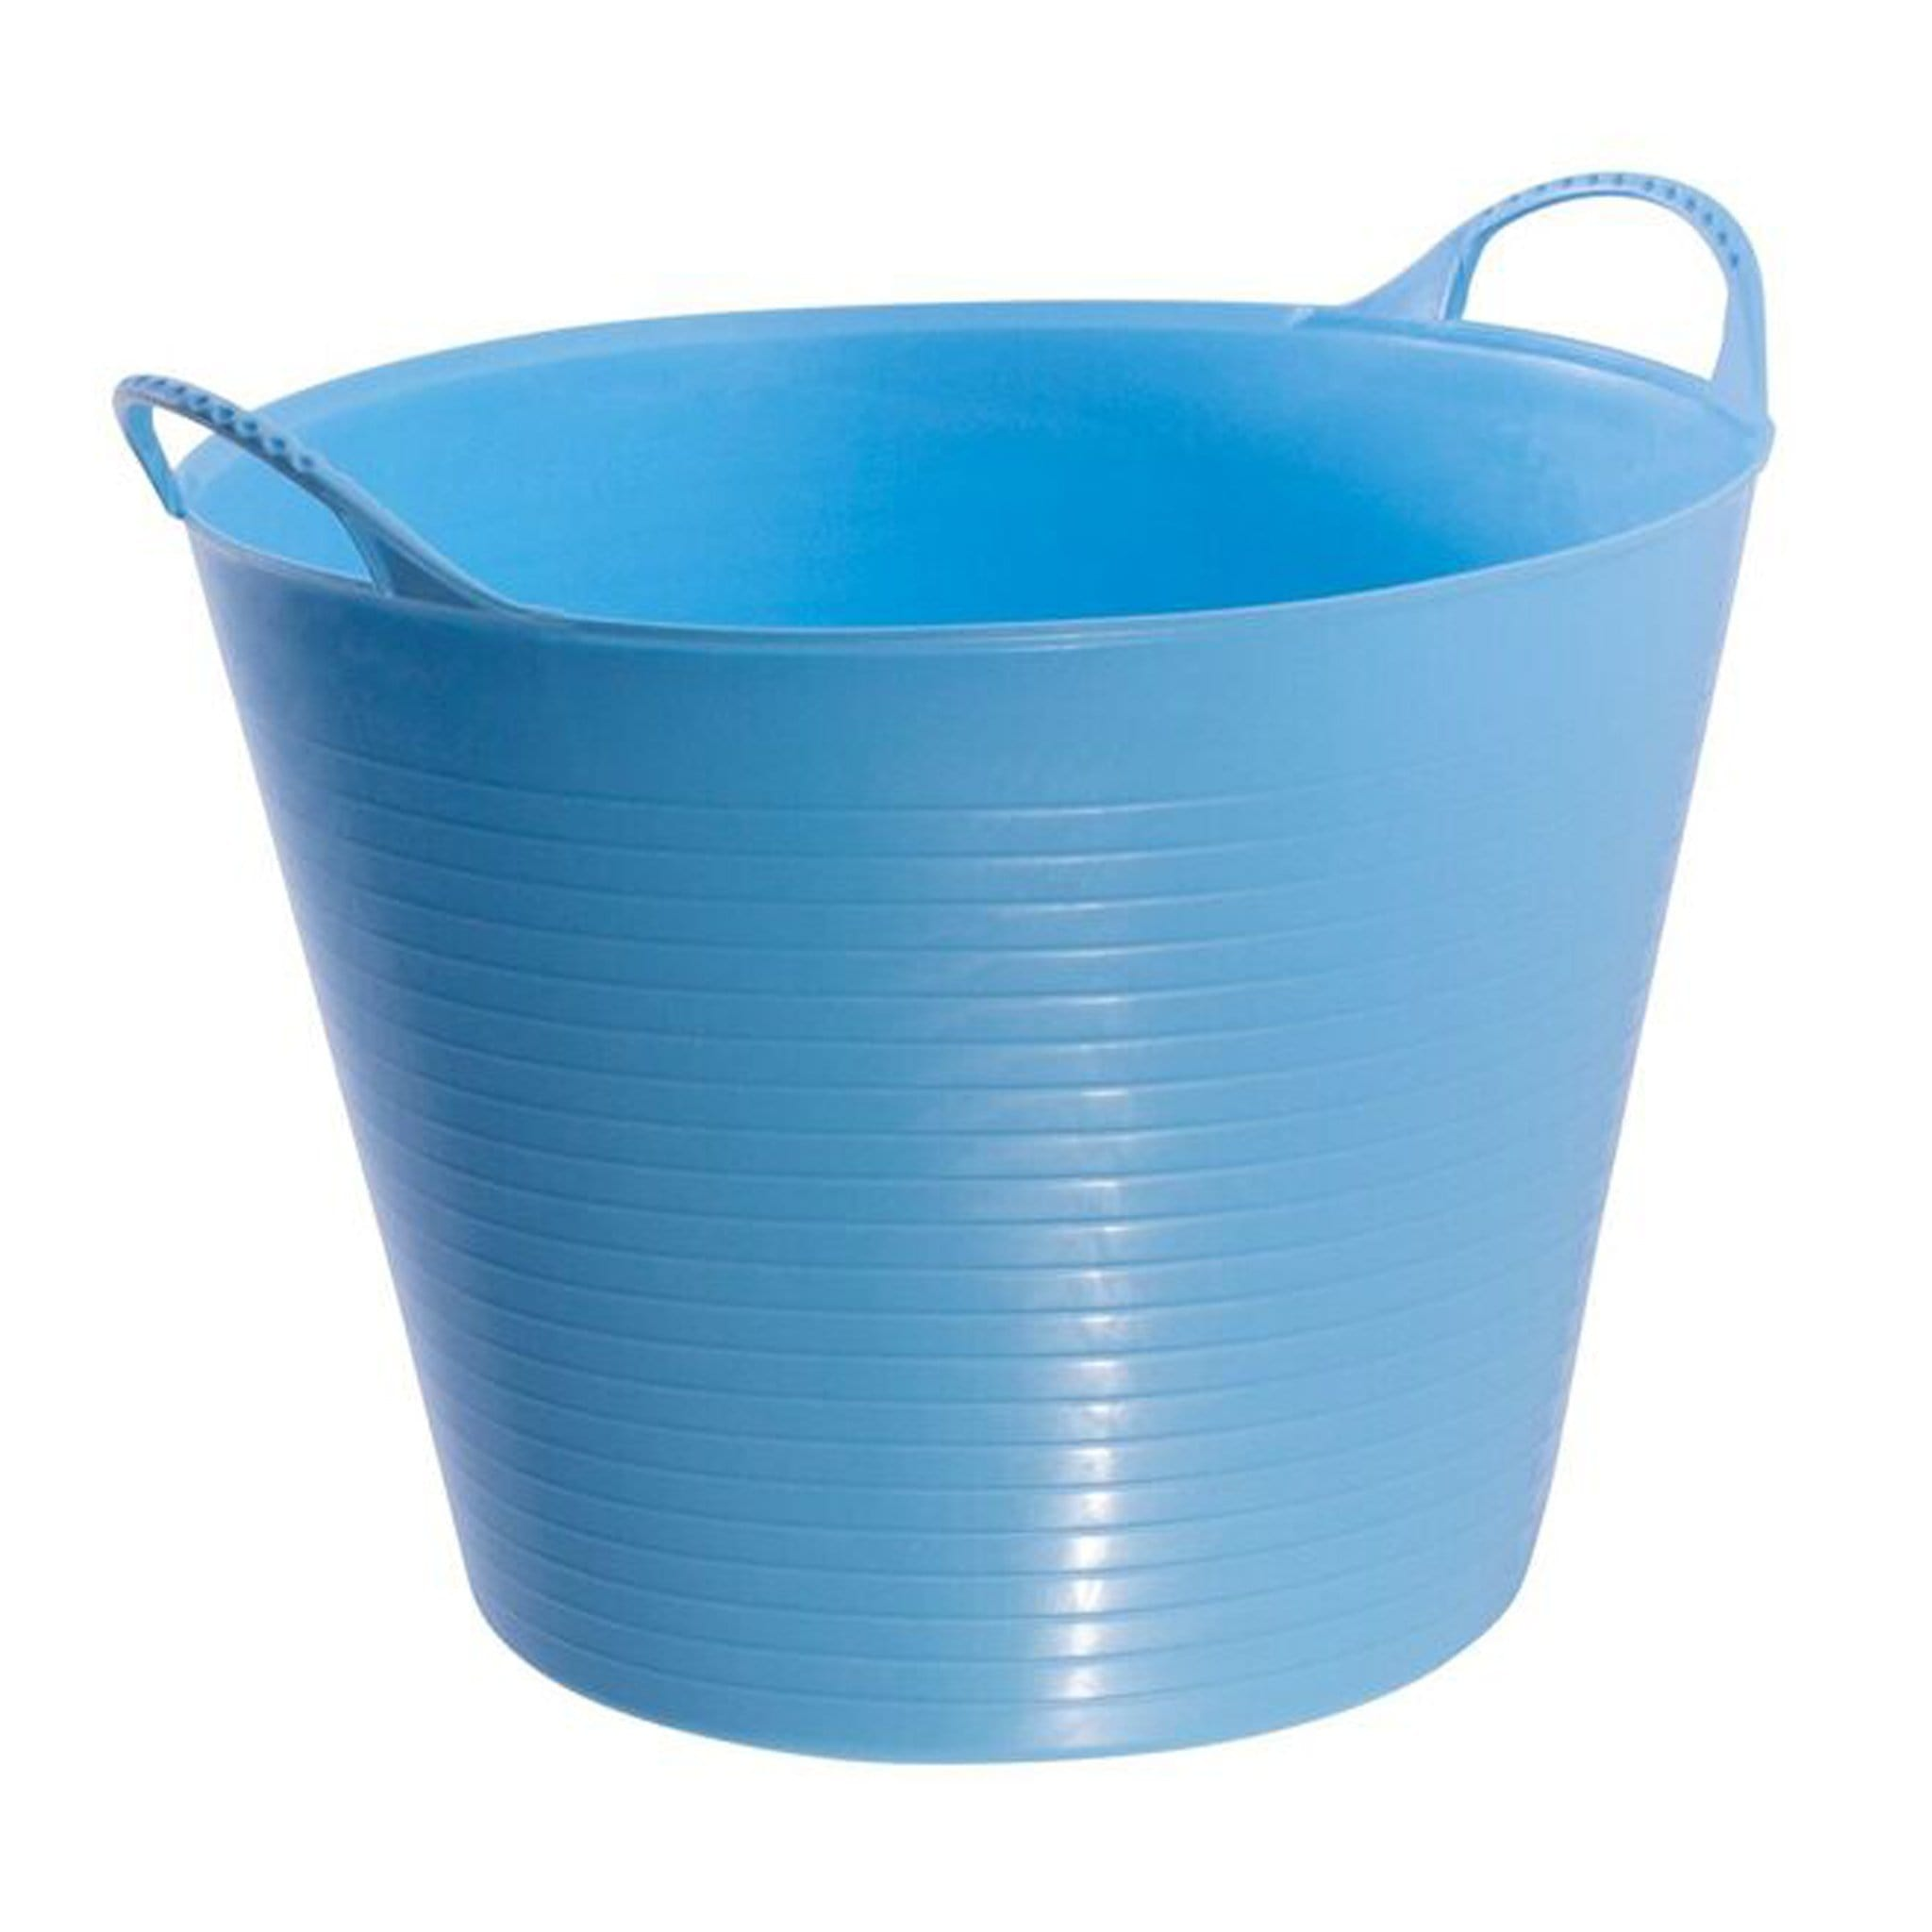 Red Gorilla TubTrug Medium Flexible Bowl Sky Blue KGR0091